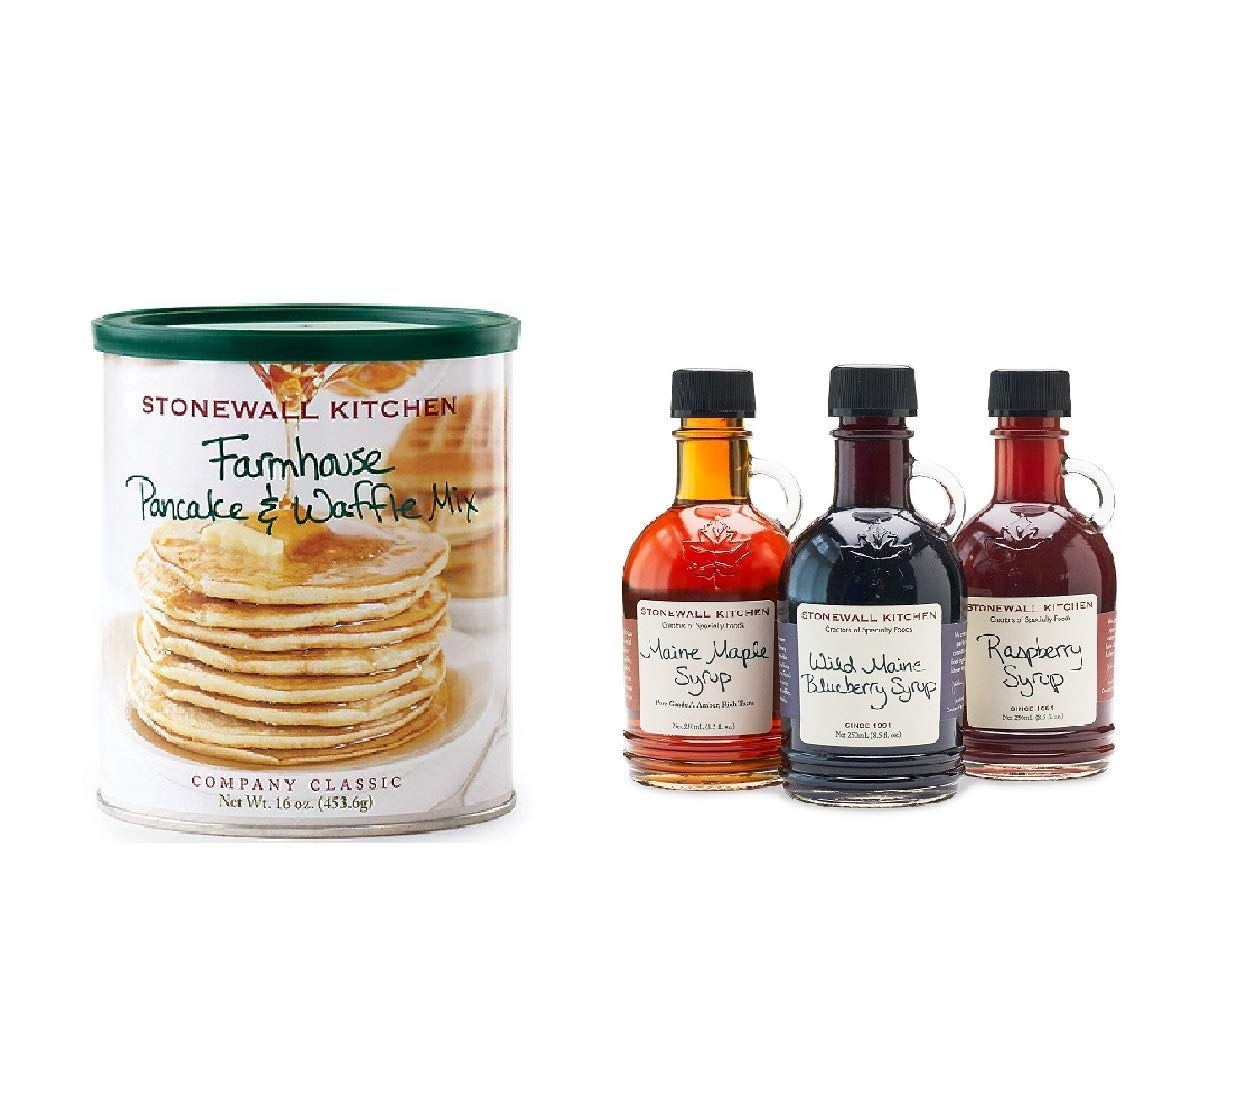 Stonewall Kitchen Syrup Variety Pack and Stonewall Kitchen Farmhouse Pancake & Waffle Mix Bundle